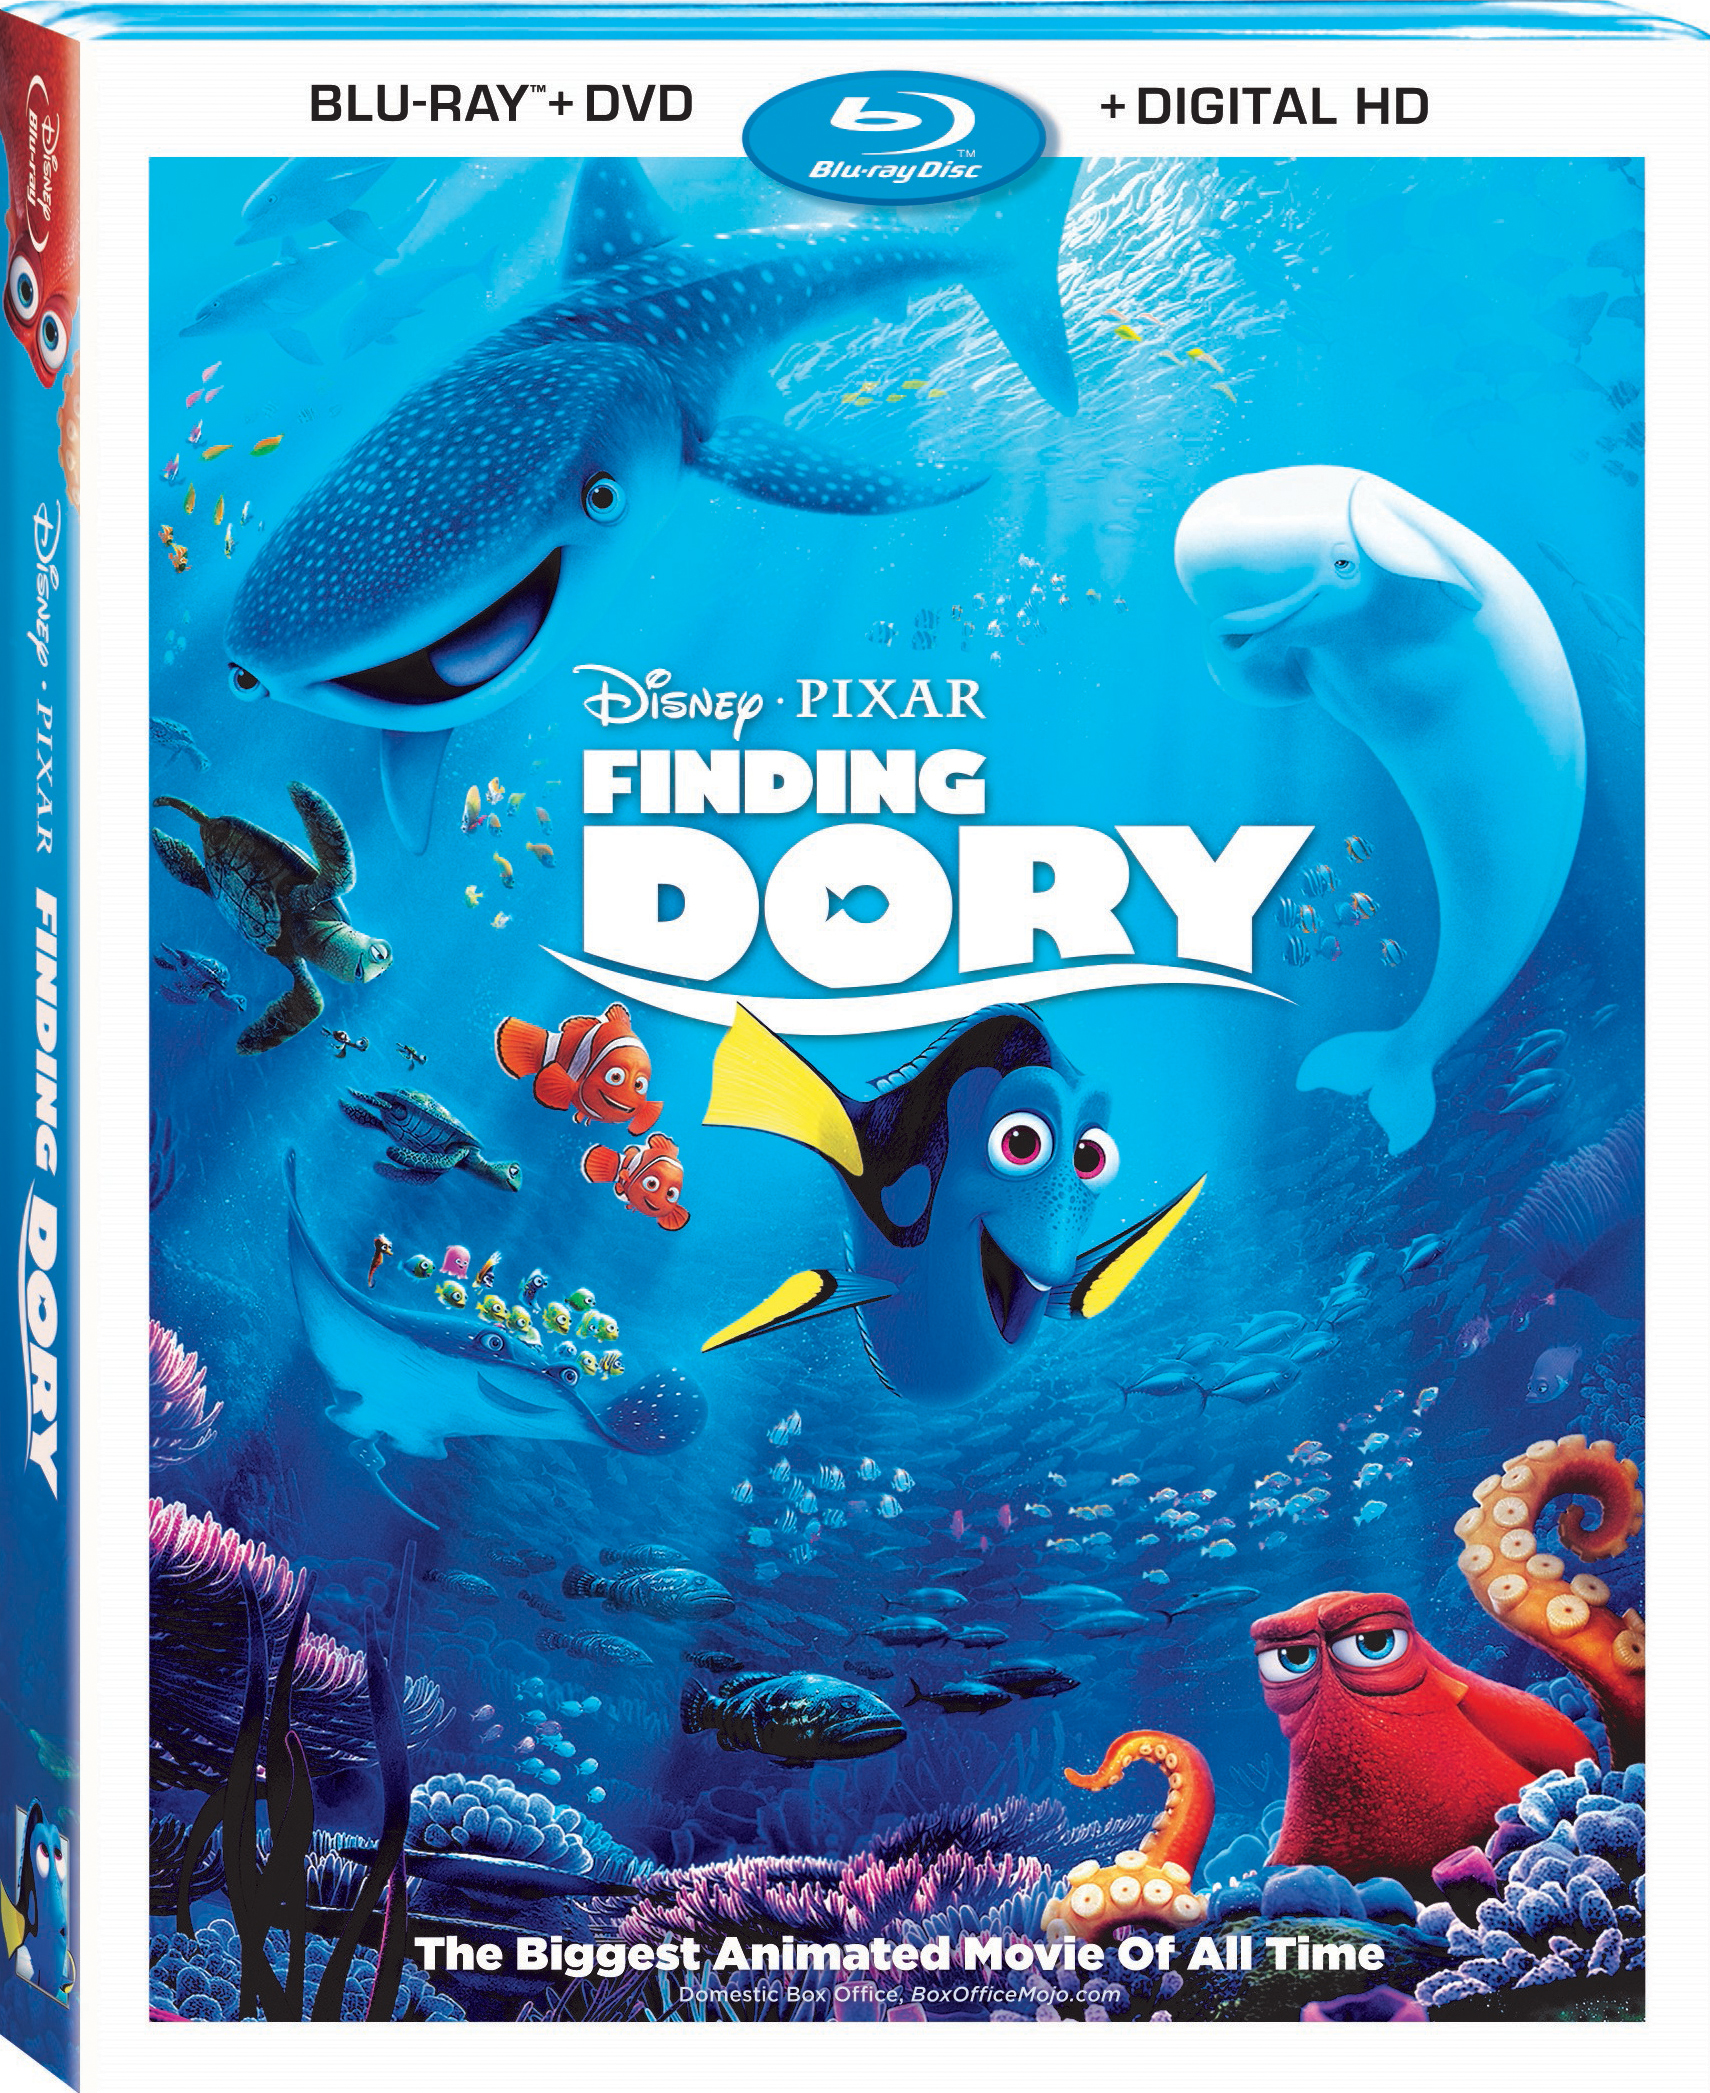 Finding Dory (2016) poster image